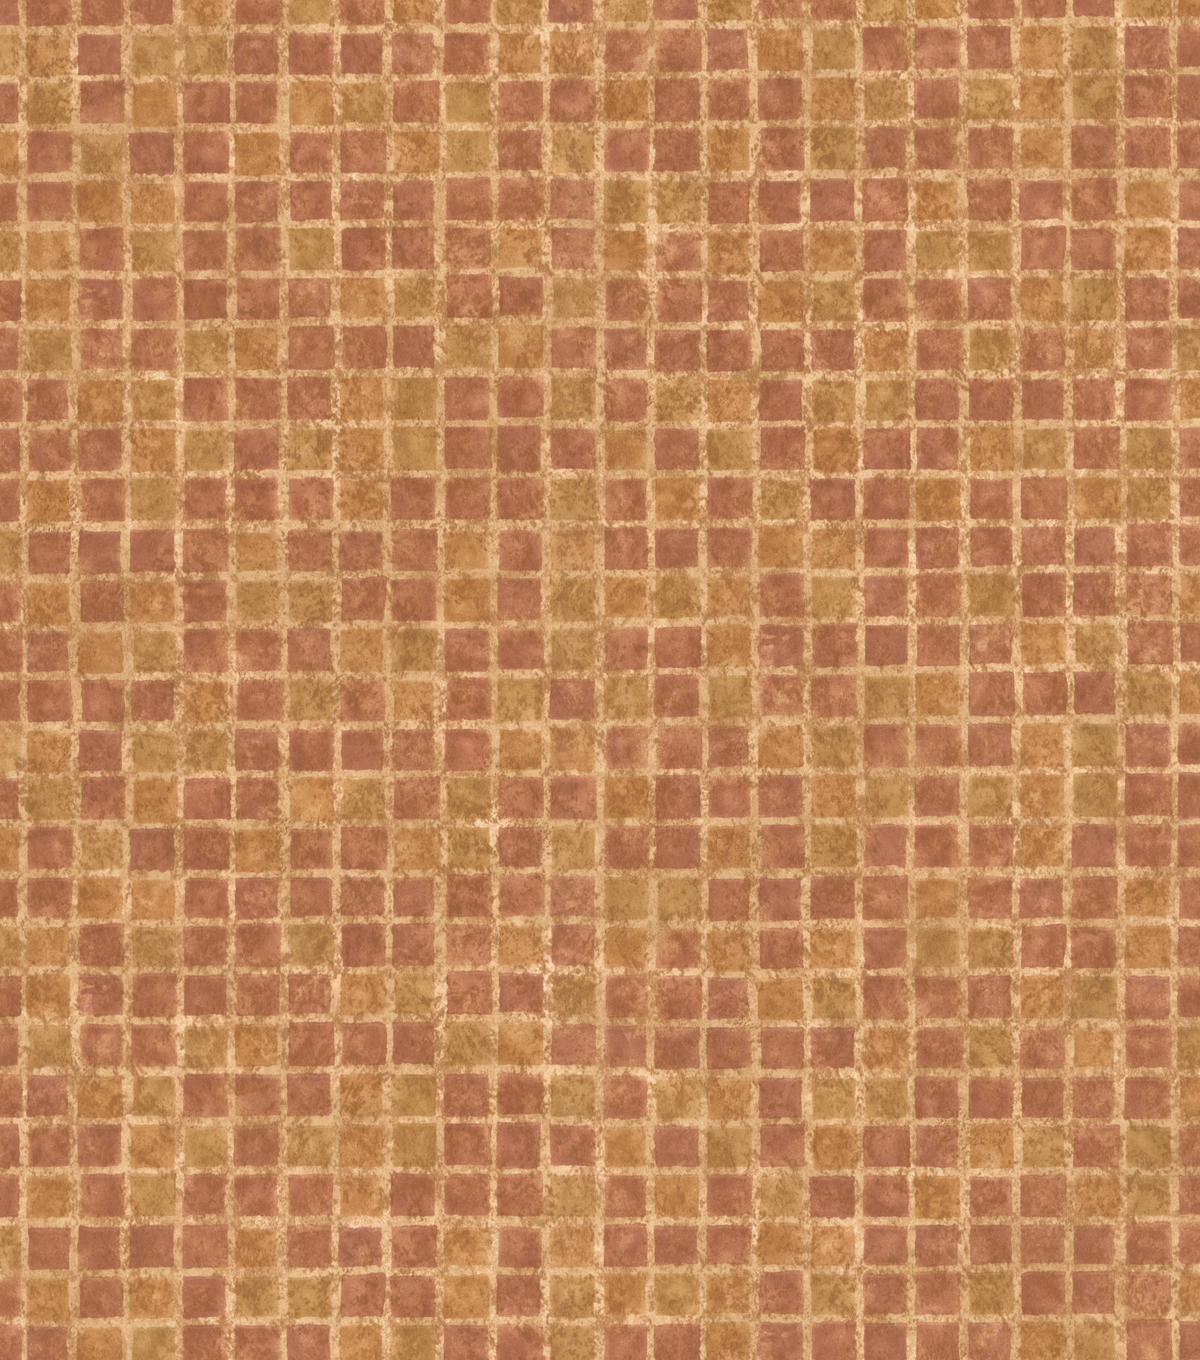 Orange Mosaic Tile Wallcovering